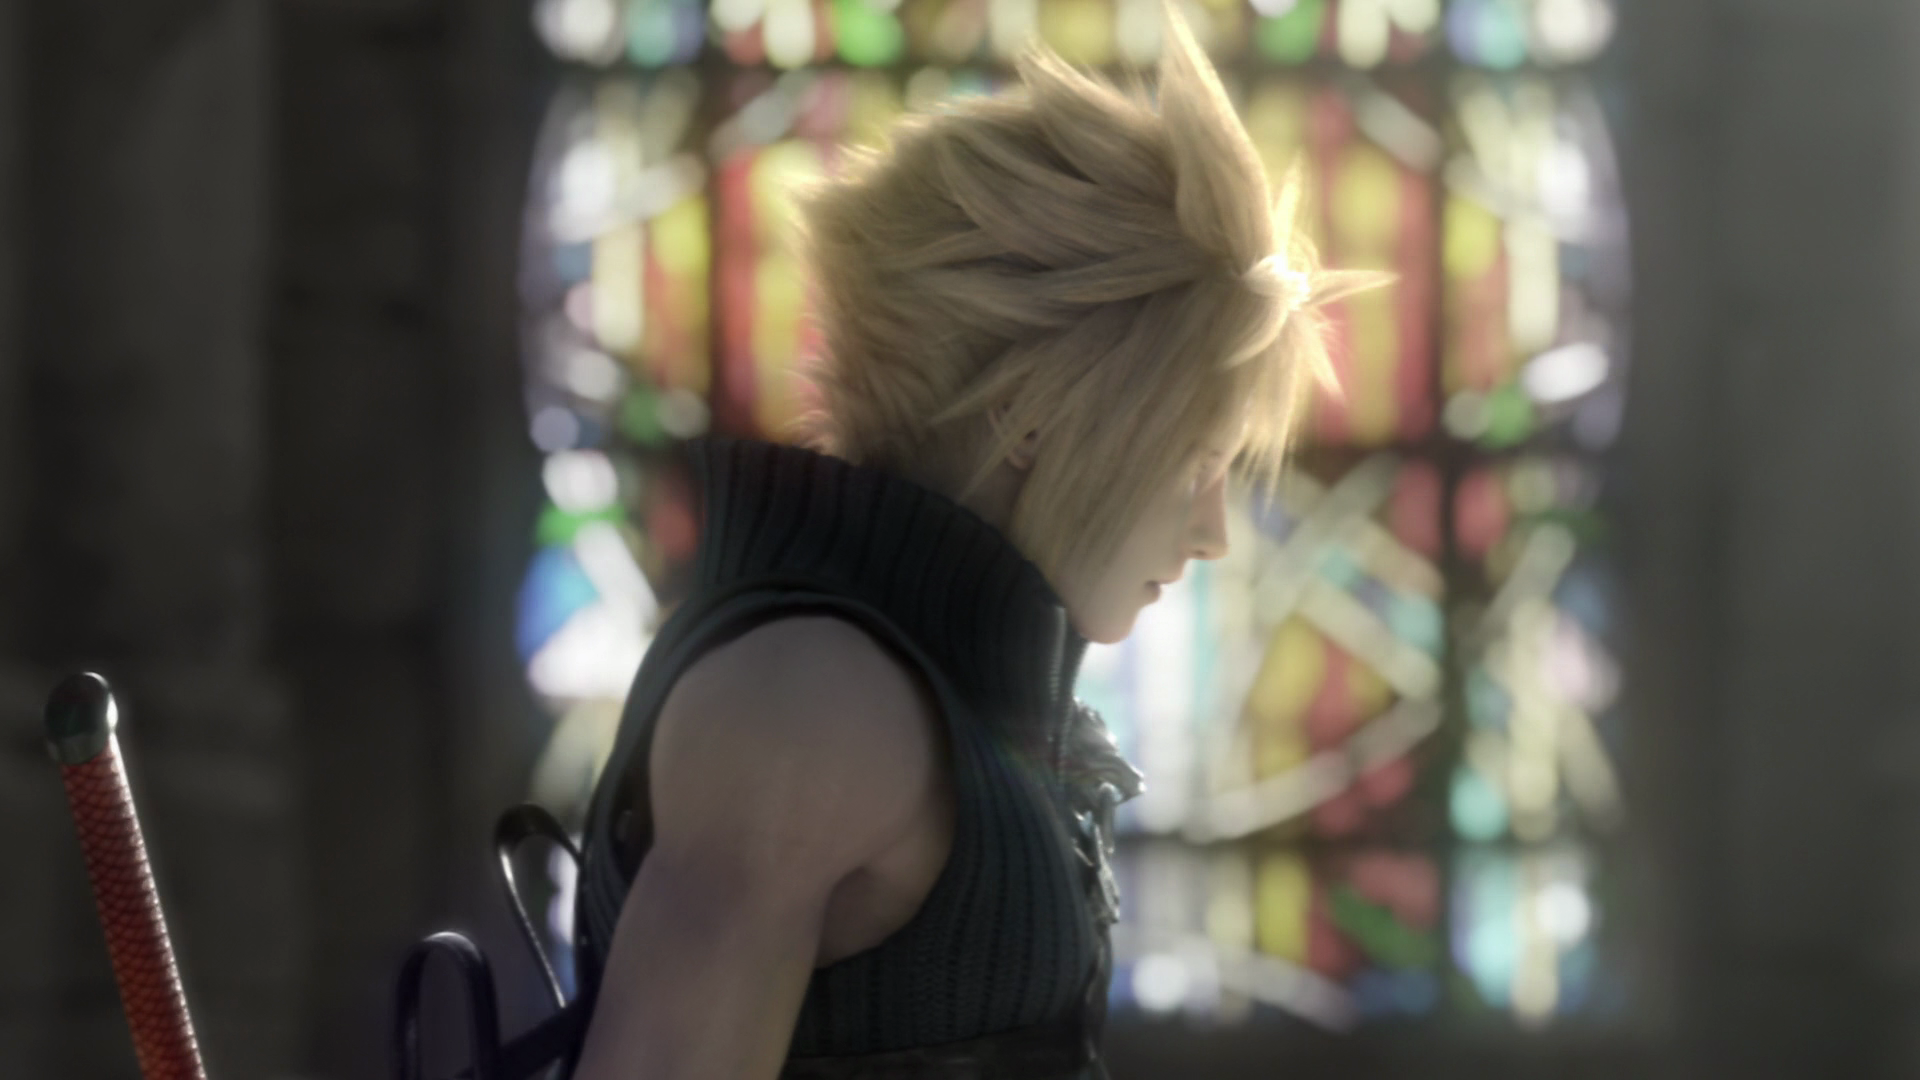 final fantasy vii: advent children full hd wallpaper and background